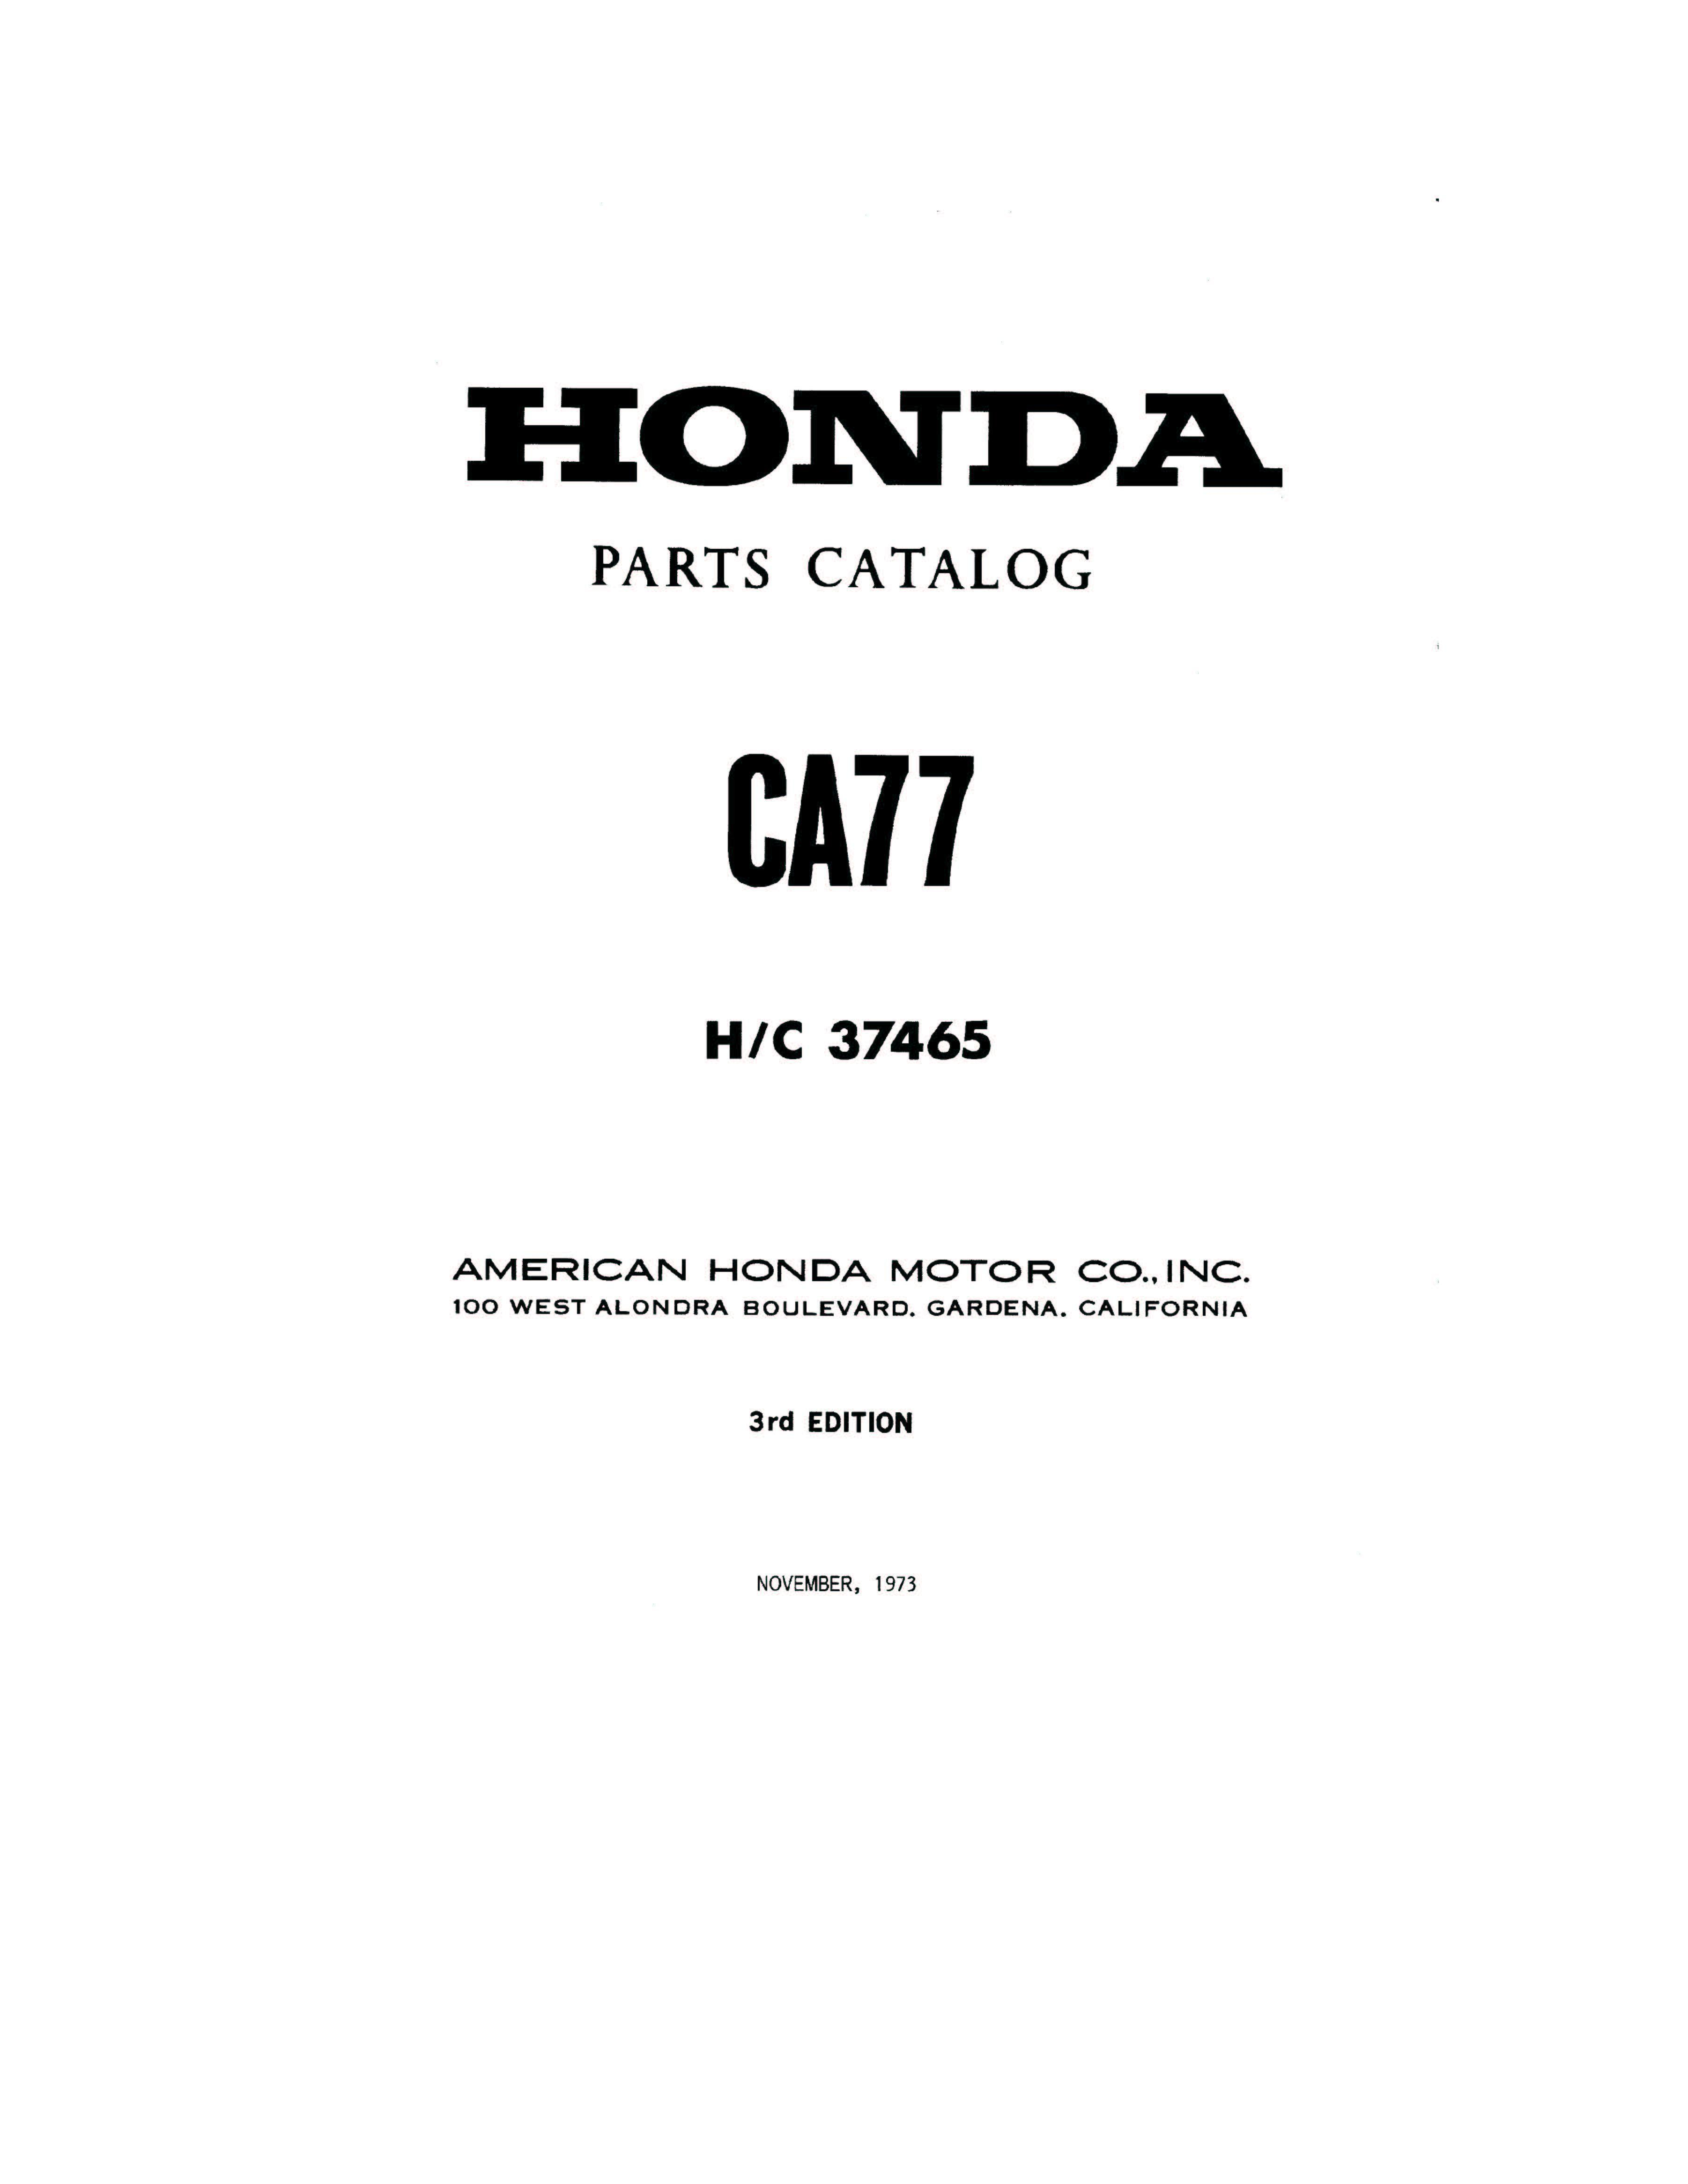 parts list 4 stroke net all the data for your honda motorcycle parts list for honda ca77 1973